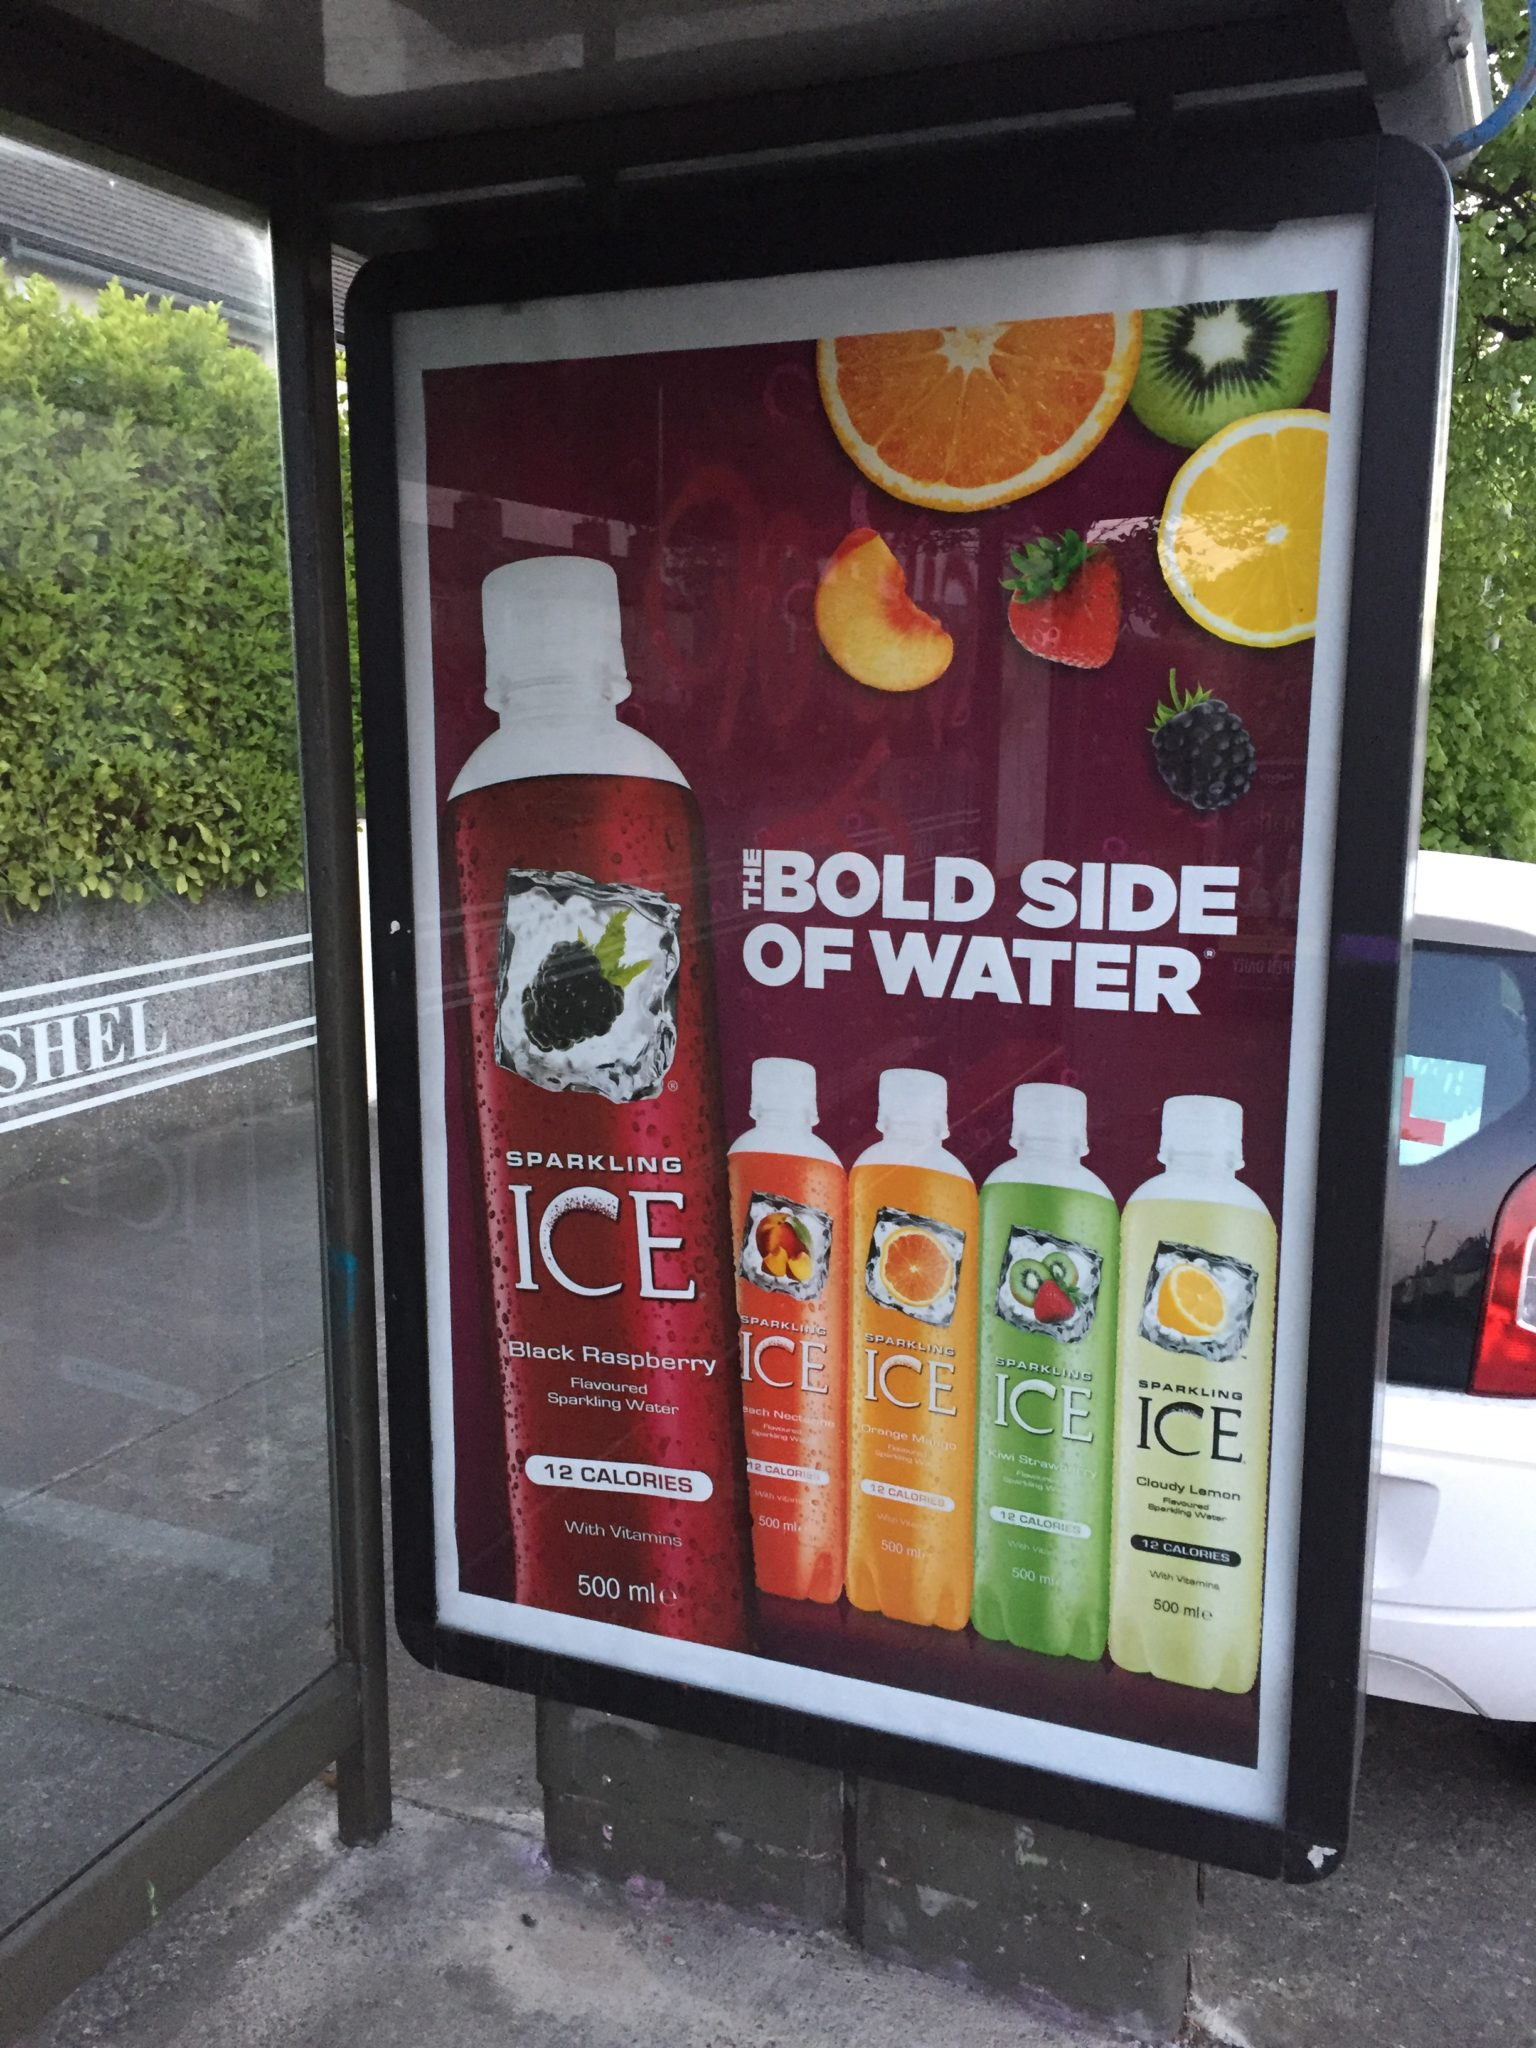 Sparkling Ice – the bold side of water